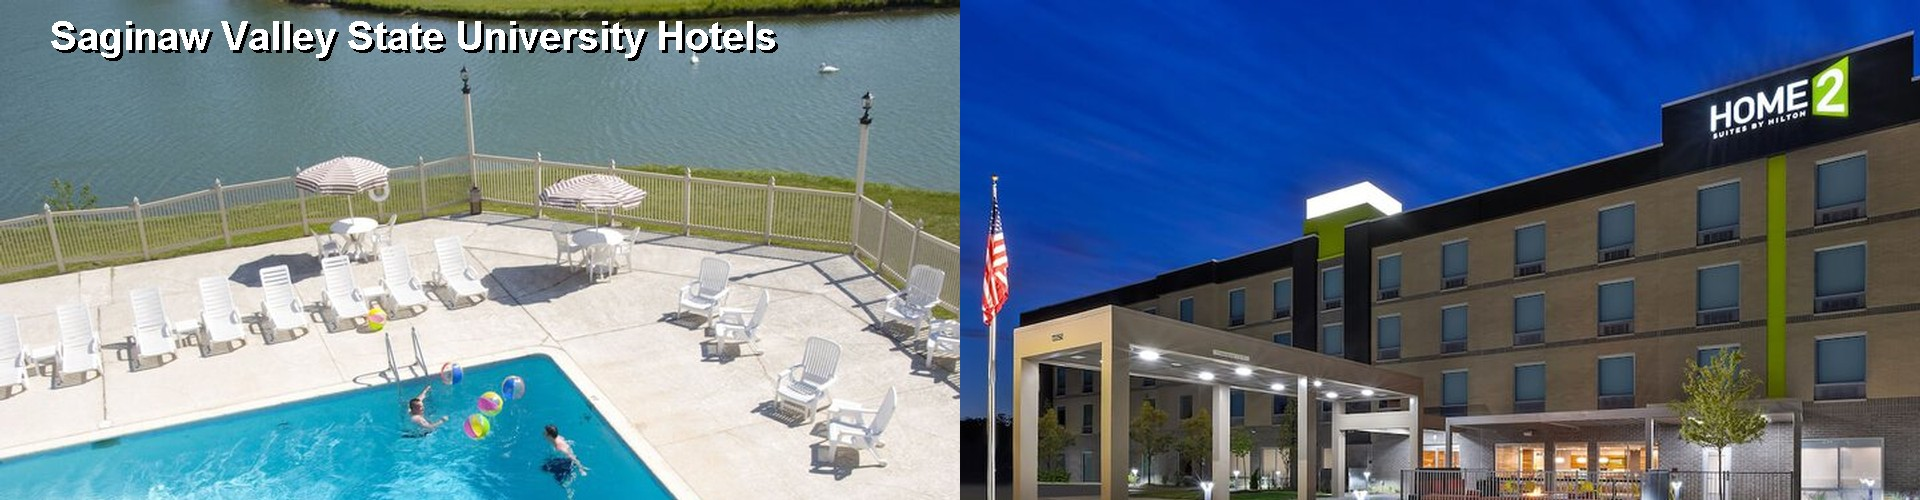 5 Best Hotels near Saginaw Valley State University